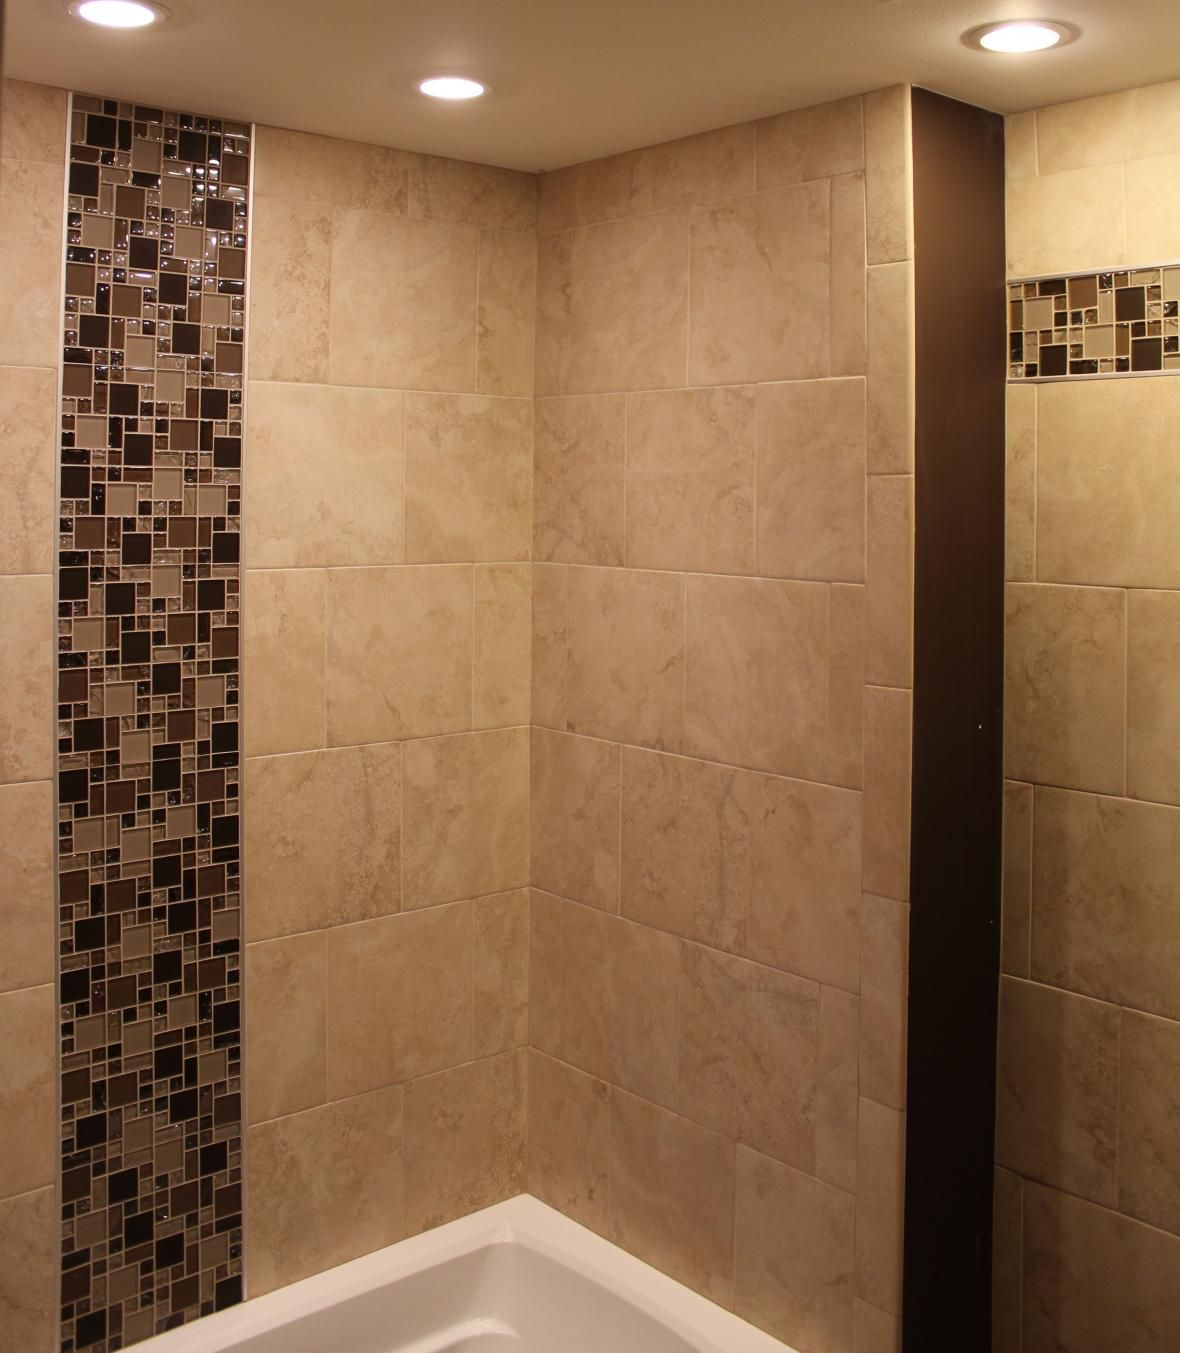 Mosaic Bathroom Tile Ideas: ... Tile Shower With Mosaic Glass